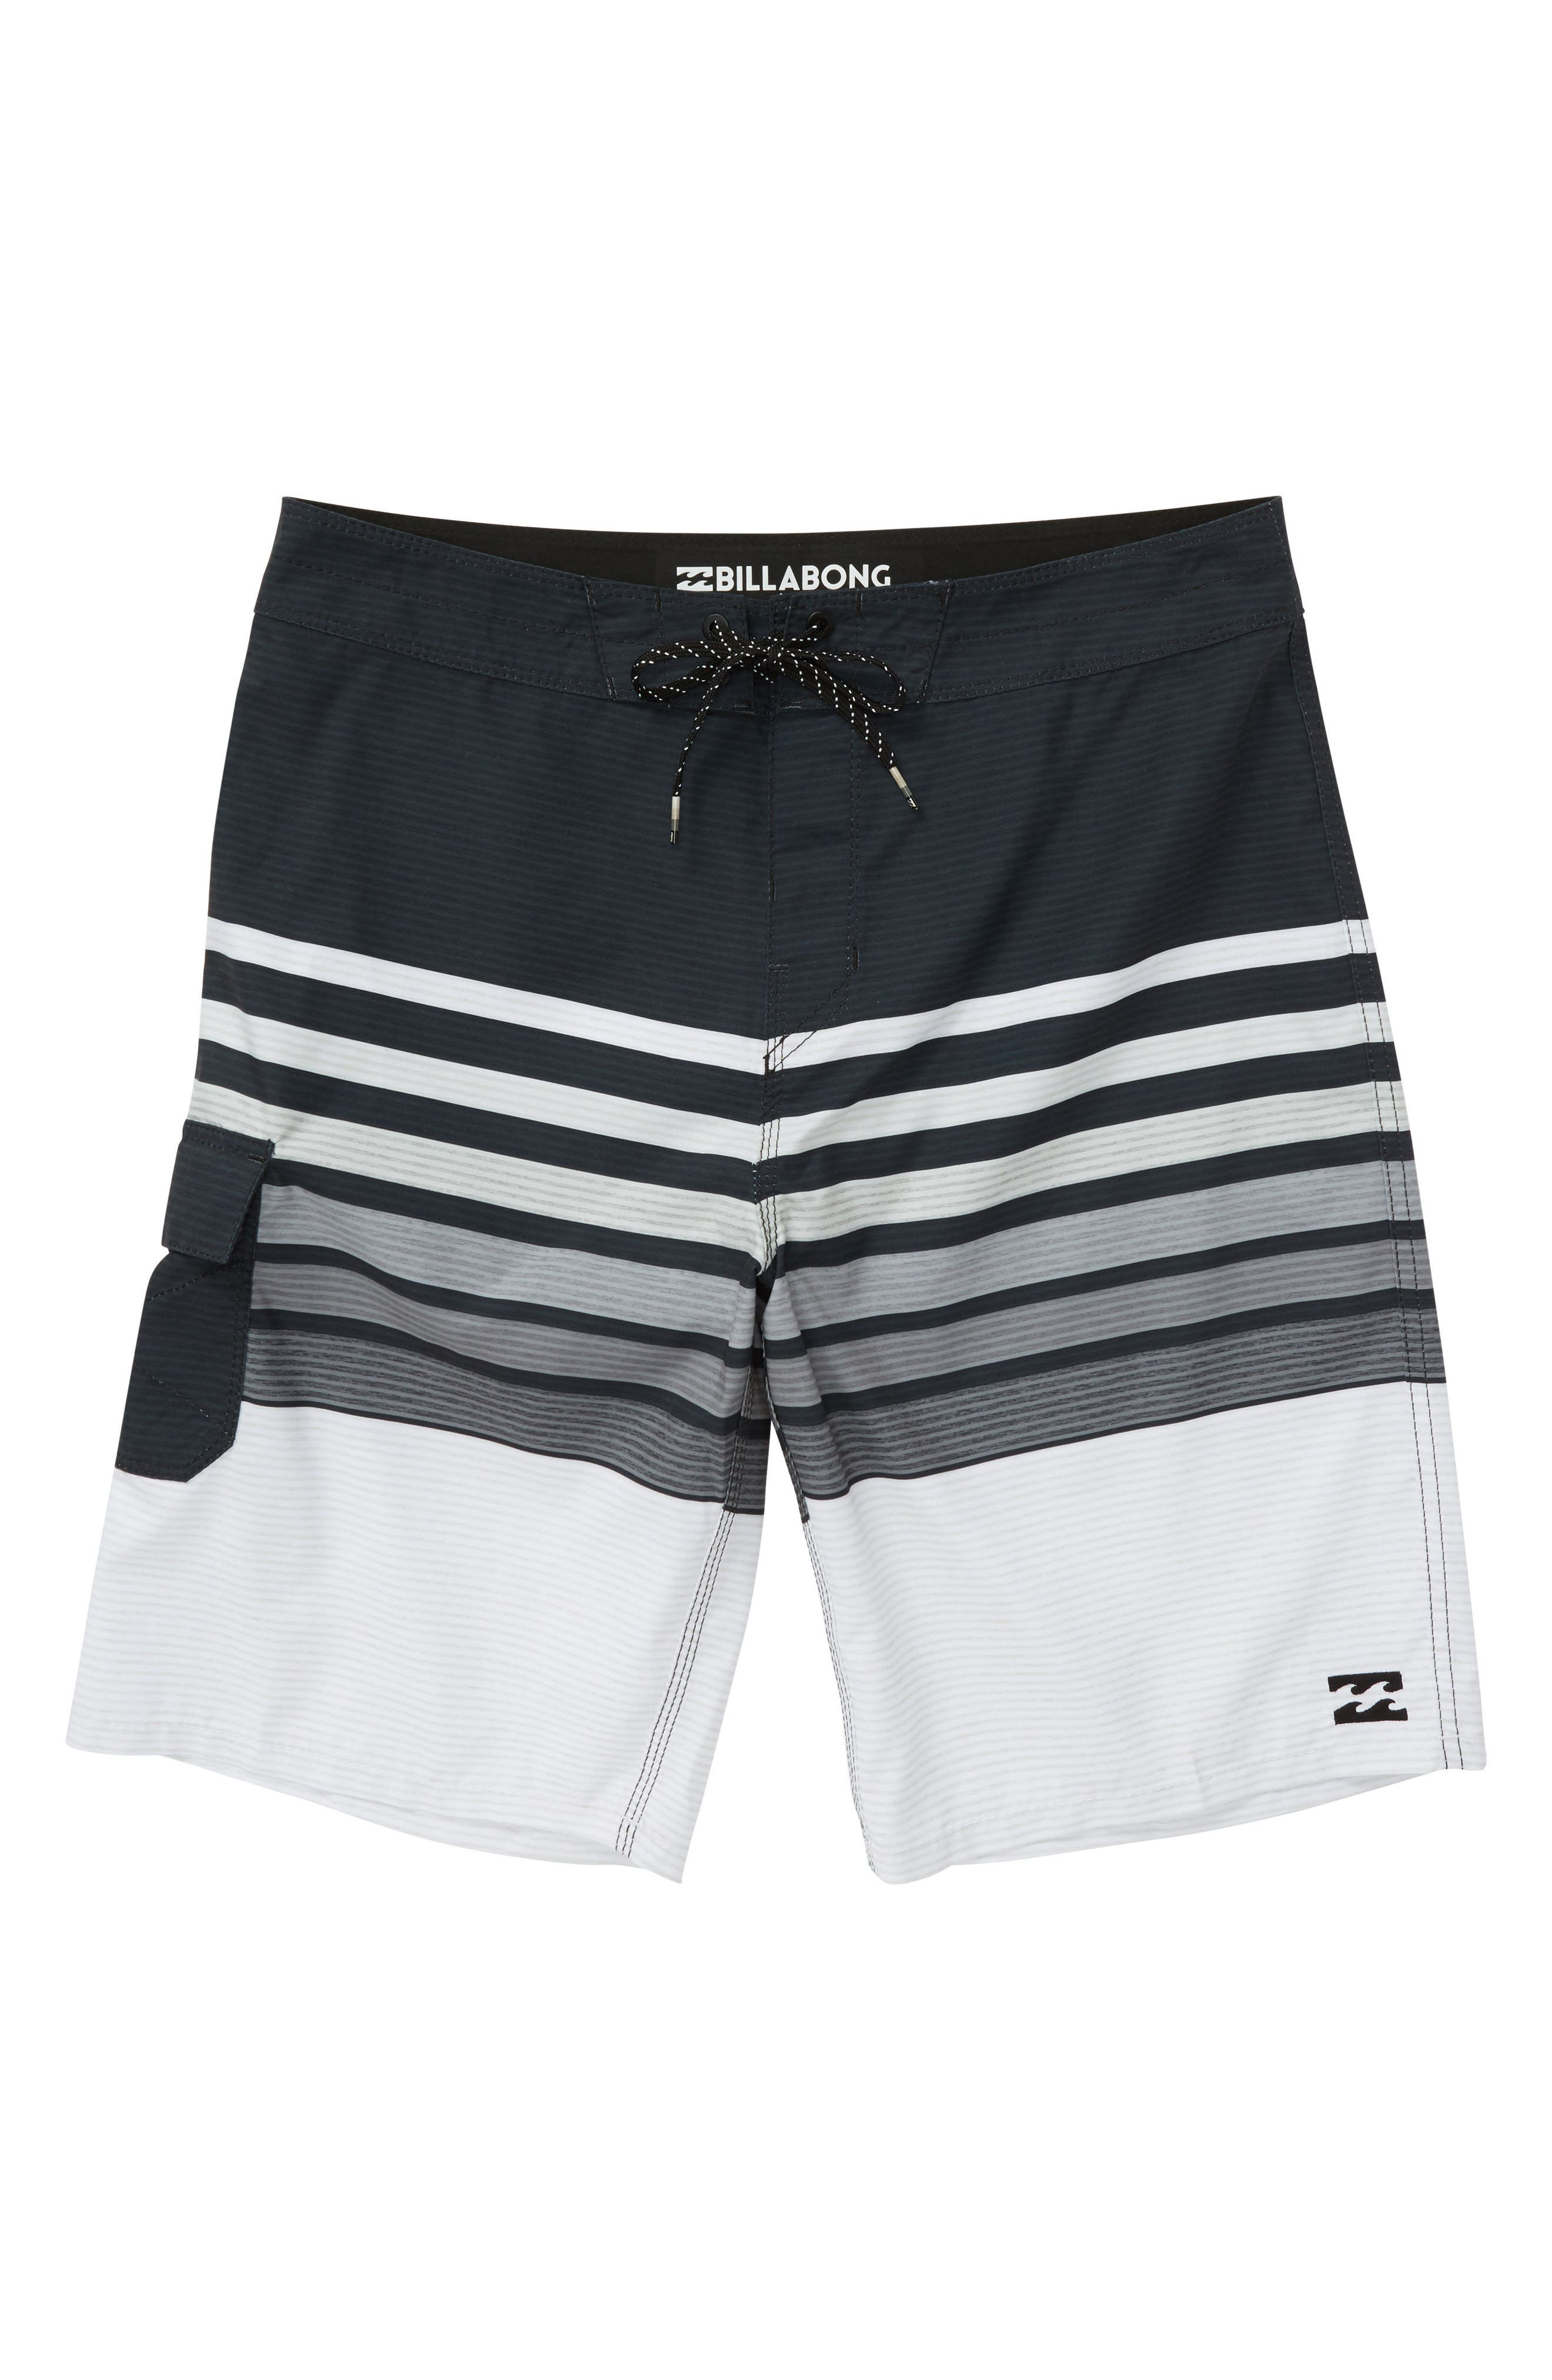 All Day OG Stripe Board Shorts,                             Alternate thumbnail 3, color,                             001